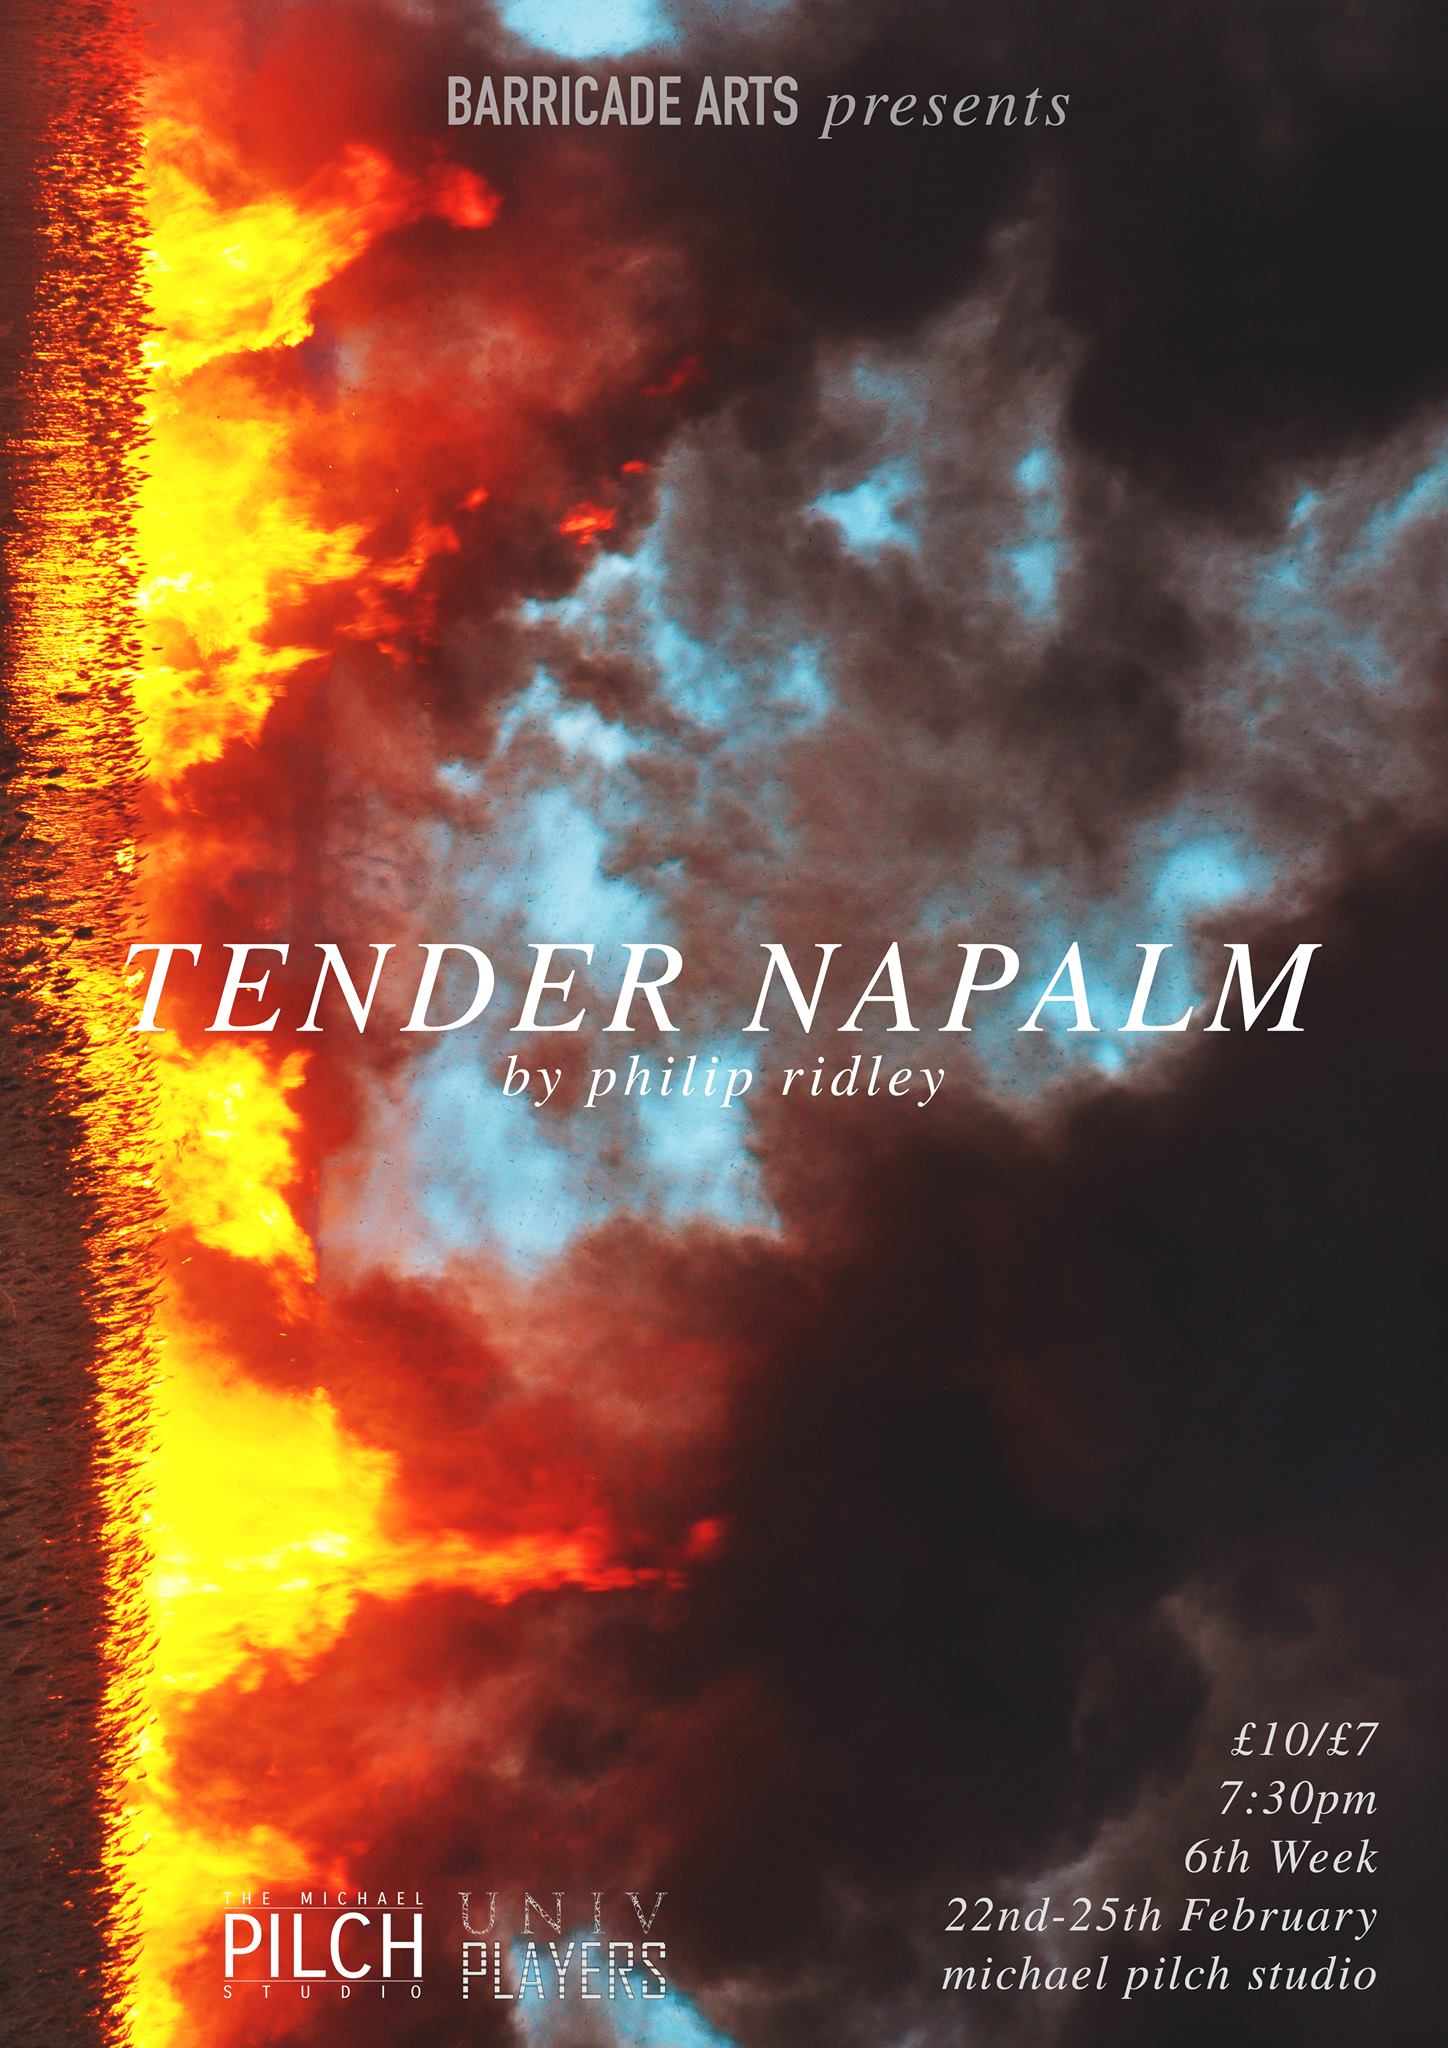 Tender Napalm: An Intimate and Nuanced Production